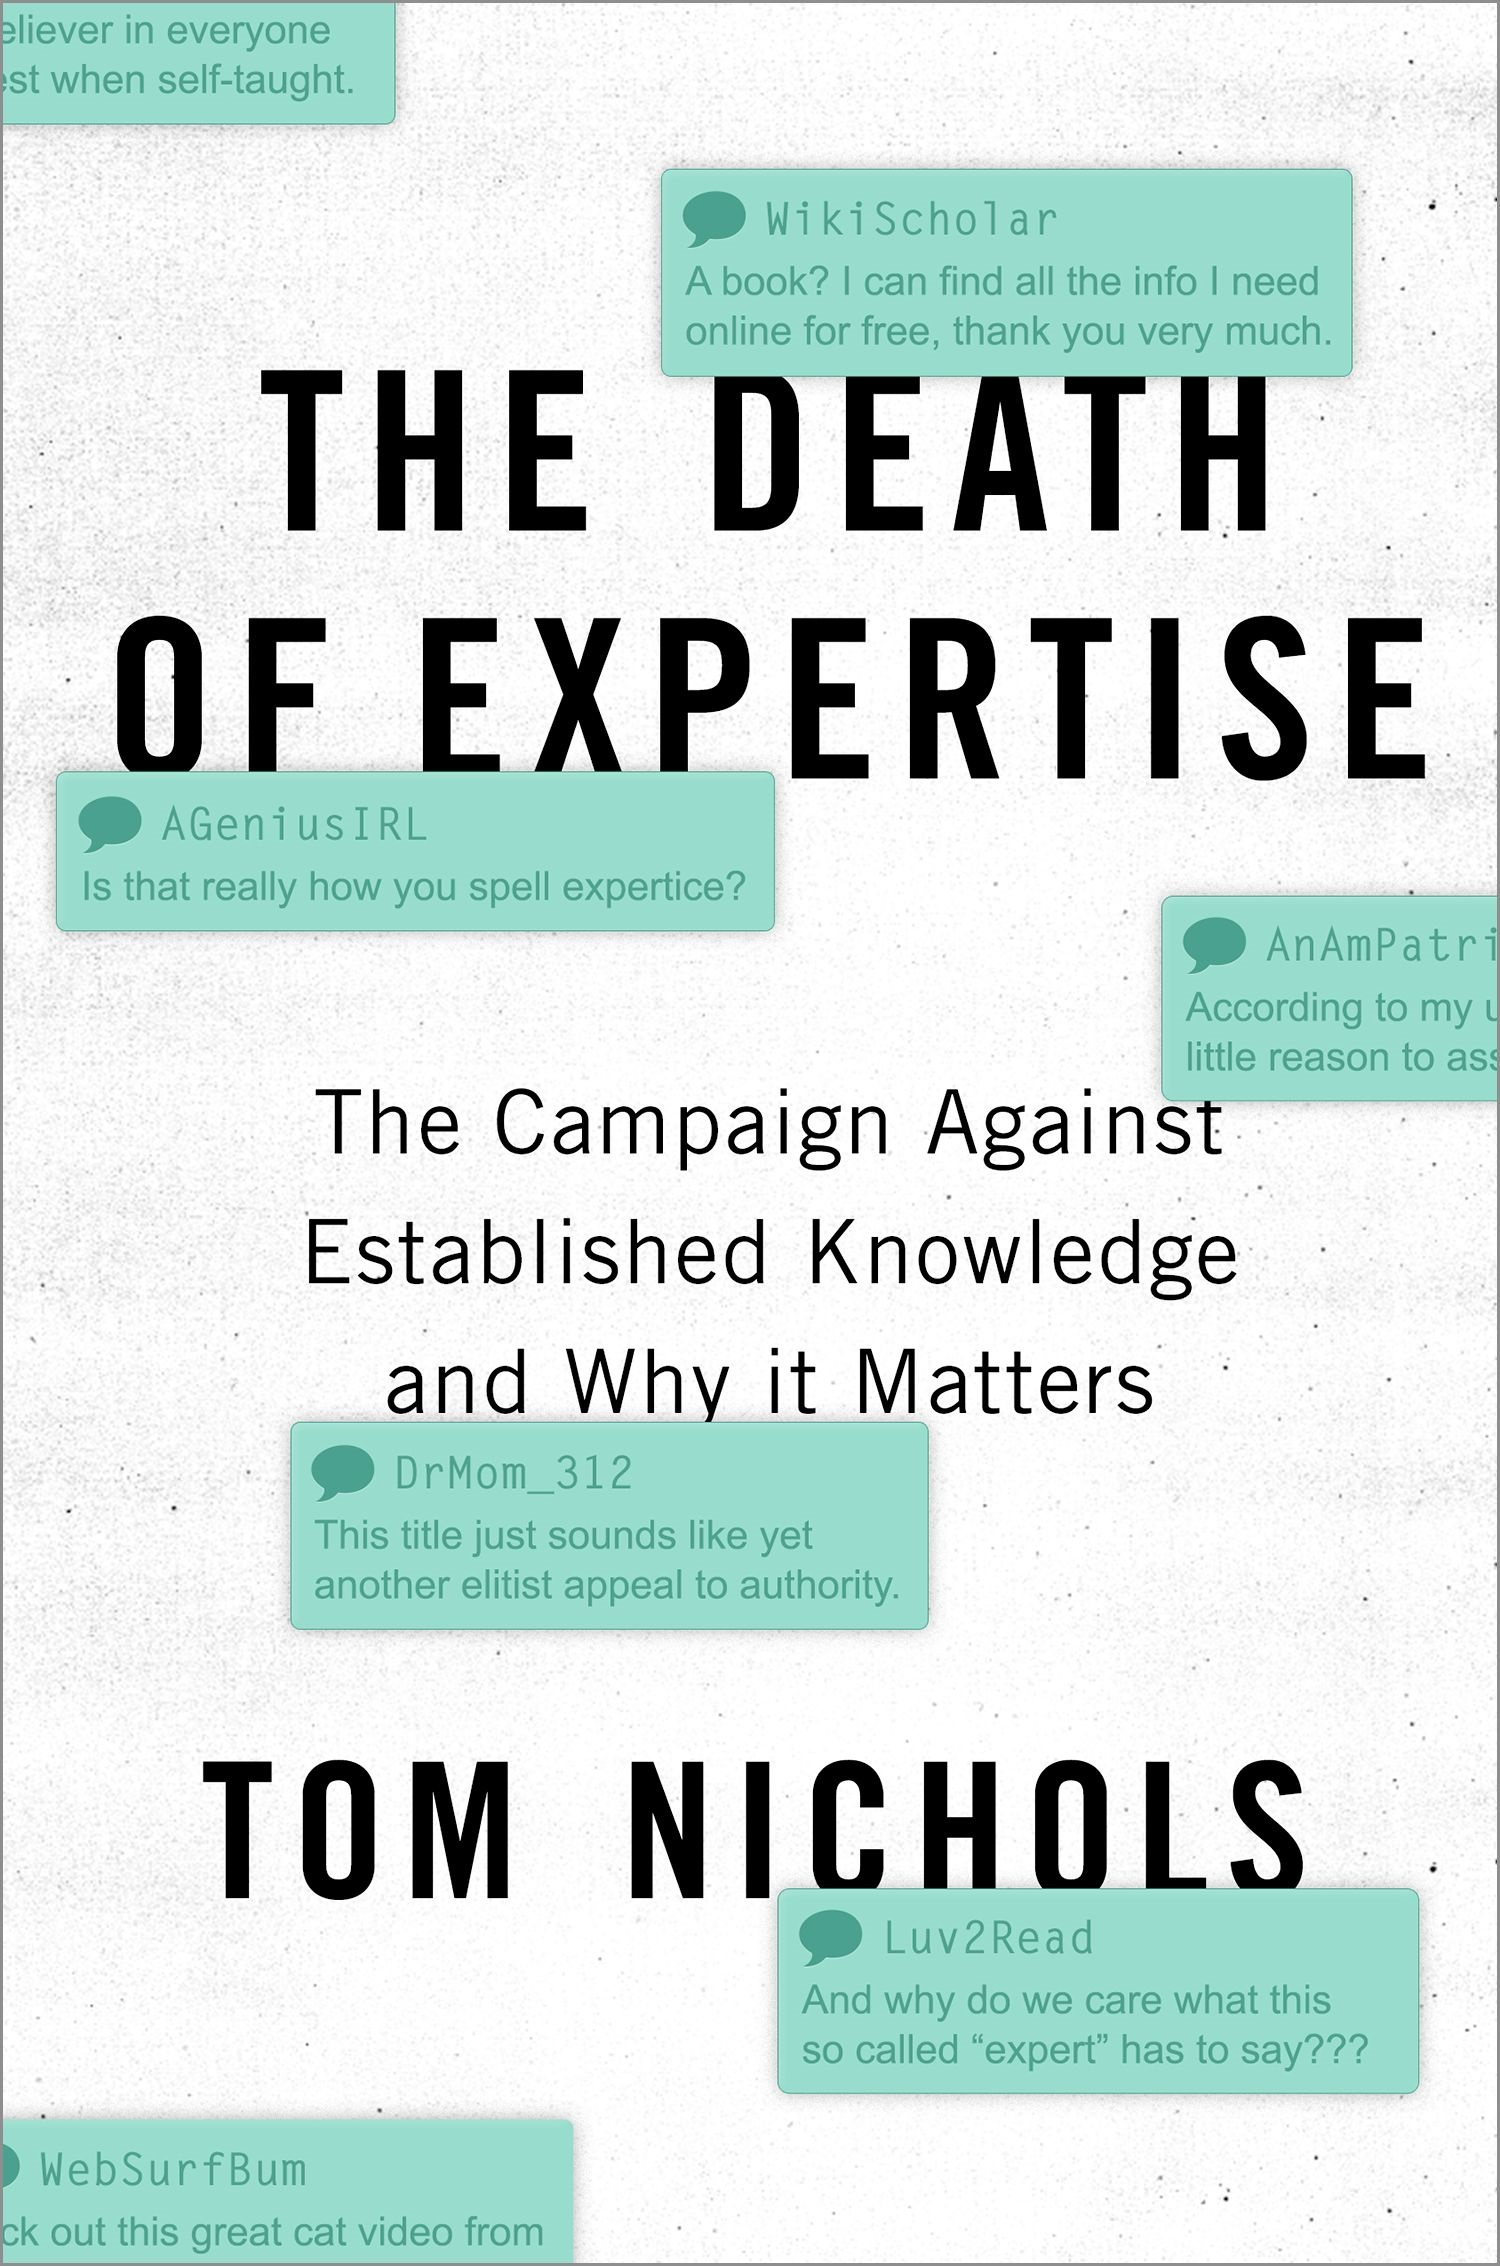 THE DEATH OF EXPERTISE cover image.jpg